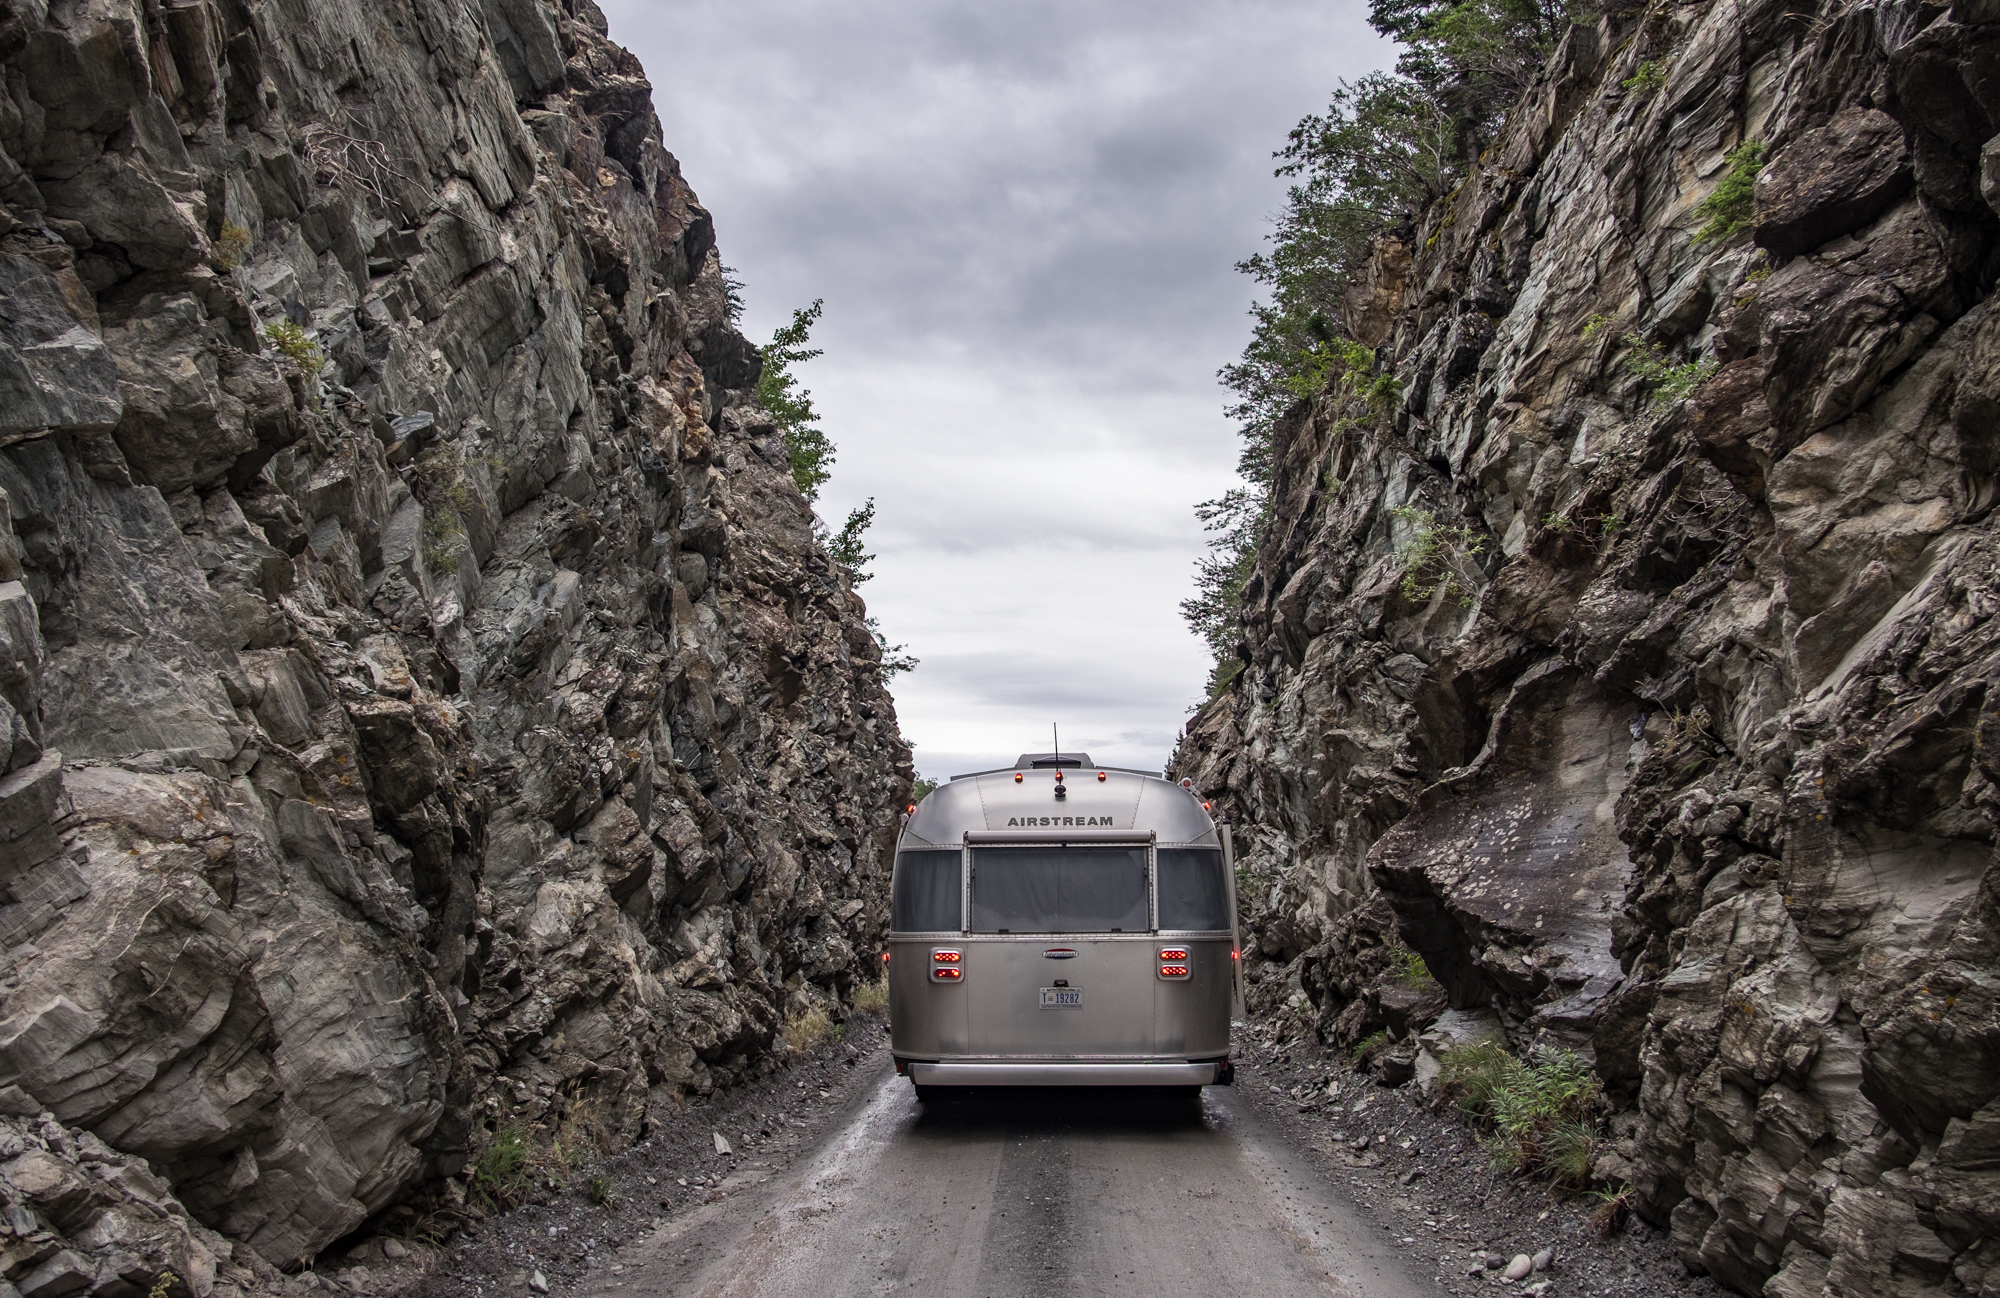 Starting the long, brain-shaking drive down McCarthy Road into the heart of Wrangell St. Elias National Park with Wally the Airstream in tow.